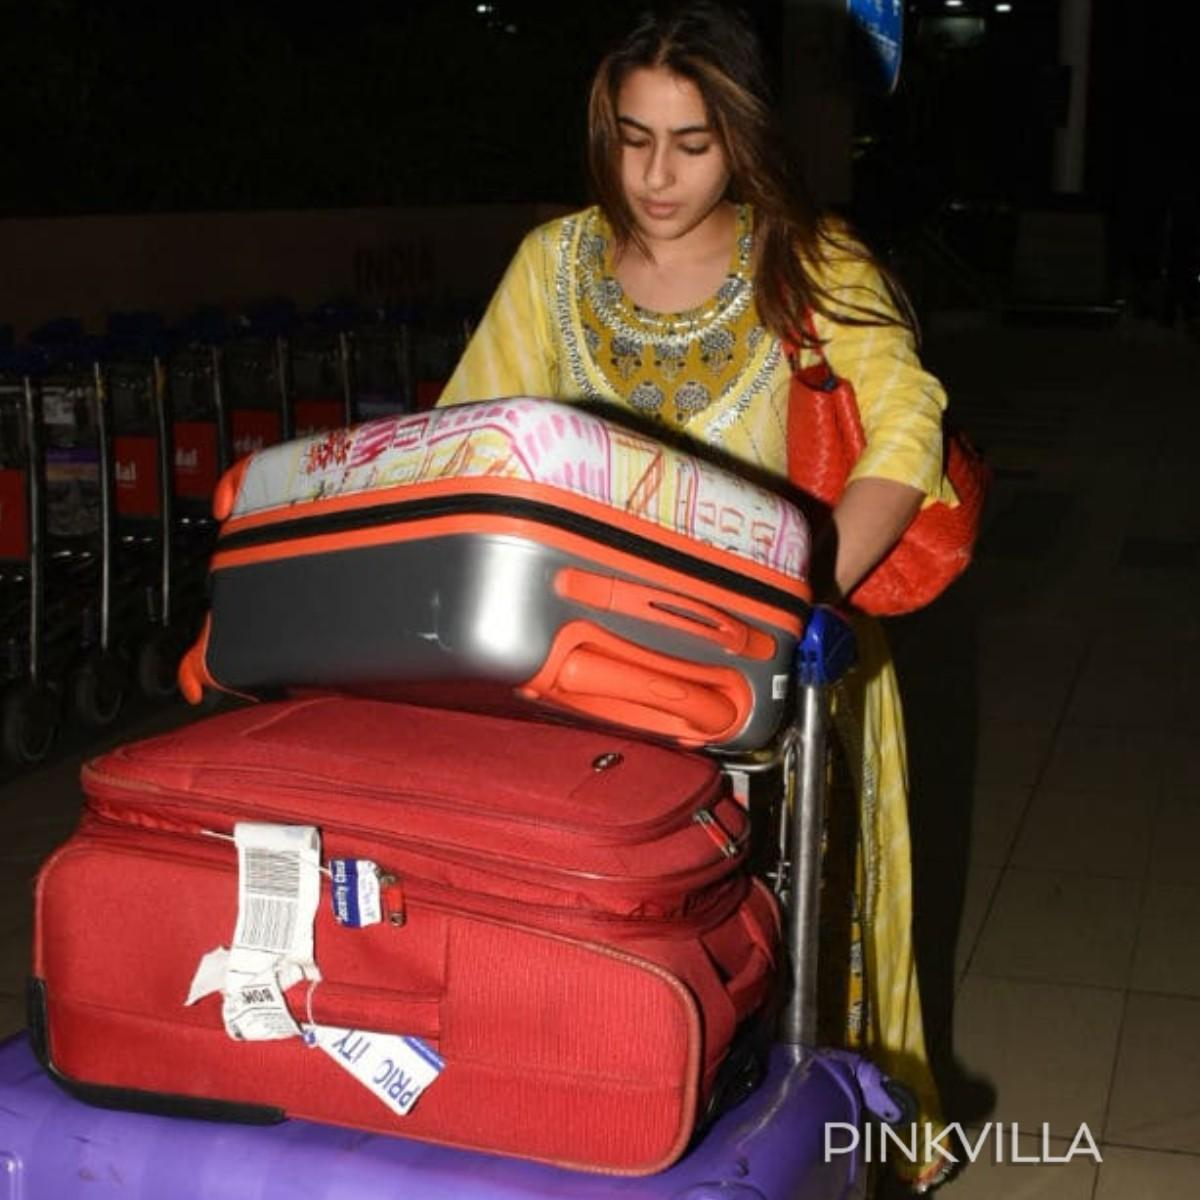 Sara Ali Khan gave us a glimpse of her modest side when she carried her own luggage at the airport